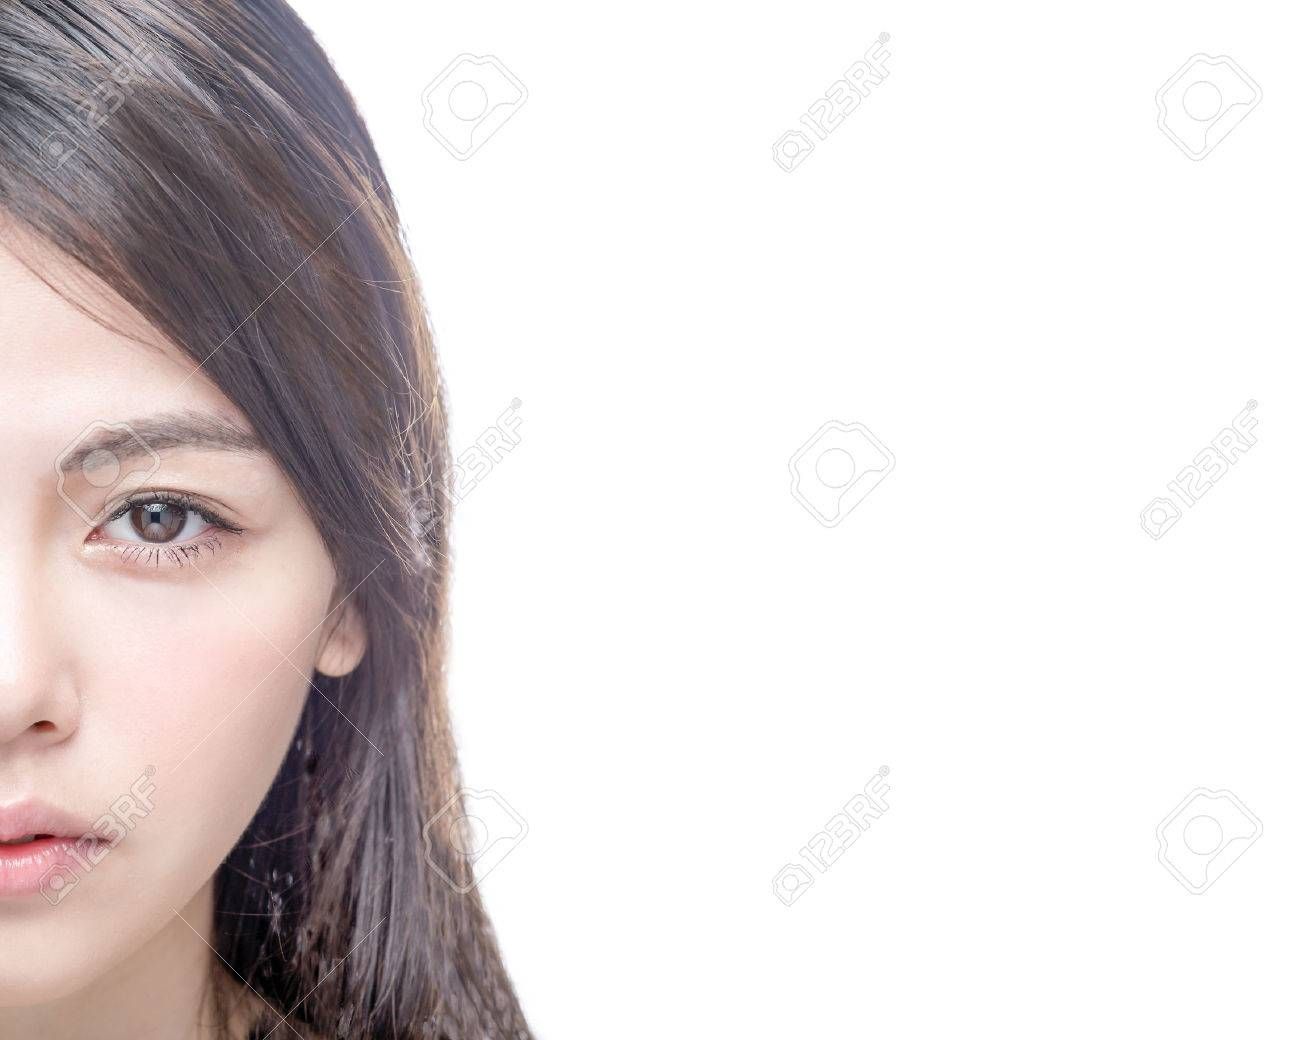 Half of Chinese Asian female face isolated on white background - 43008147